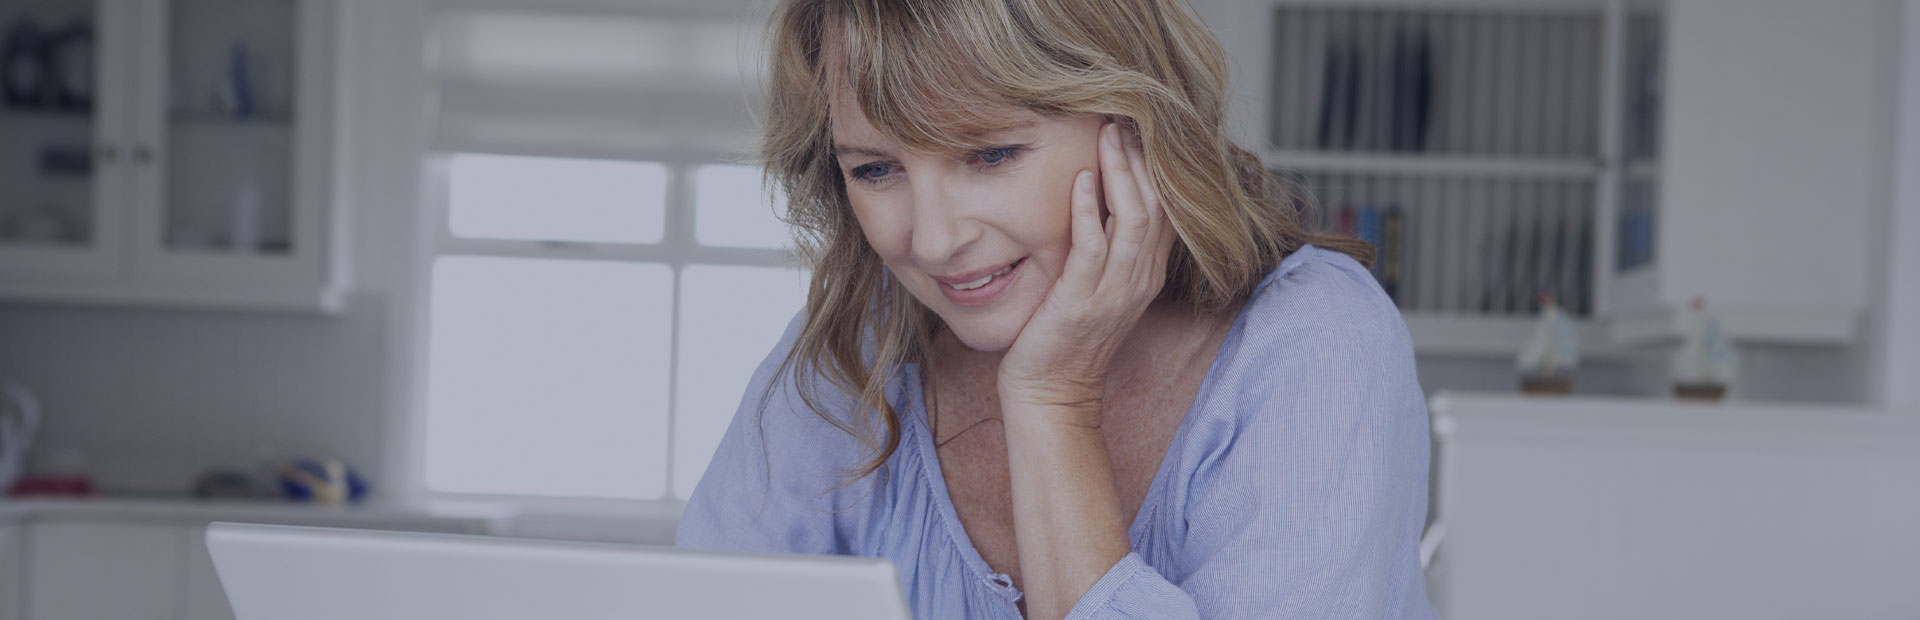 A woman in her early 50s is on her laptop in the kitchen, researching what she can do about denture pain and sores.